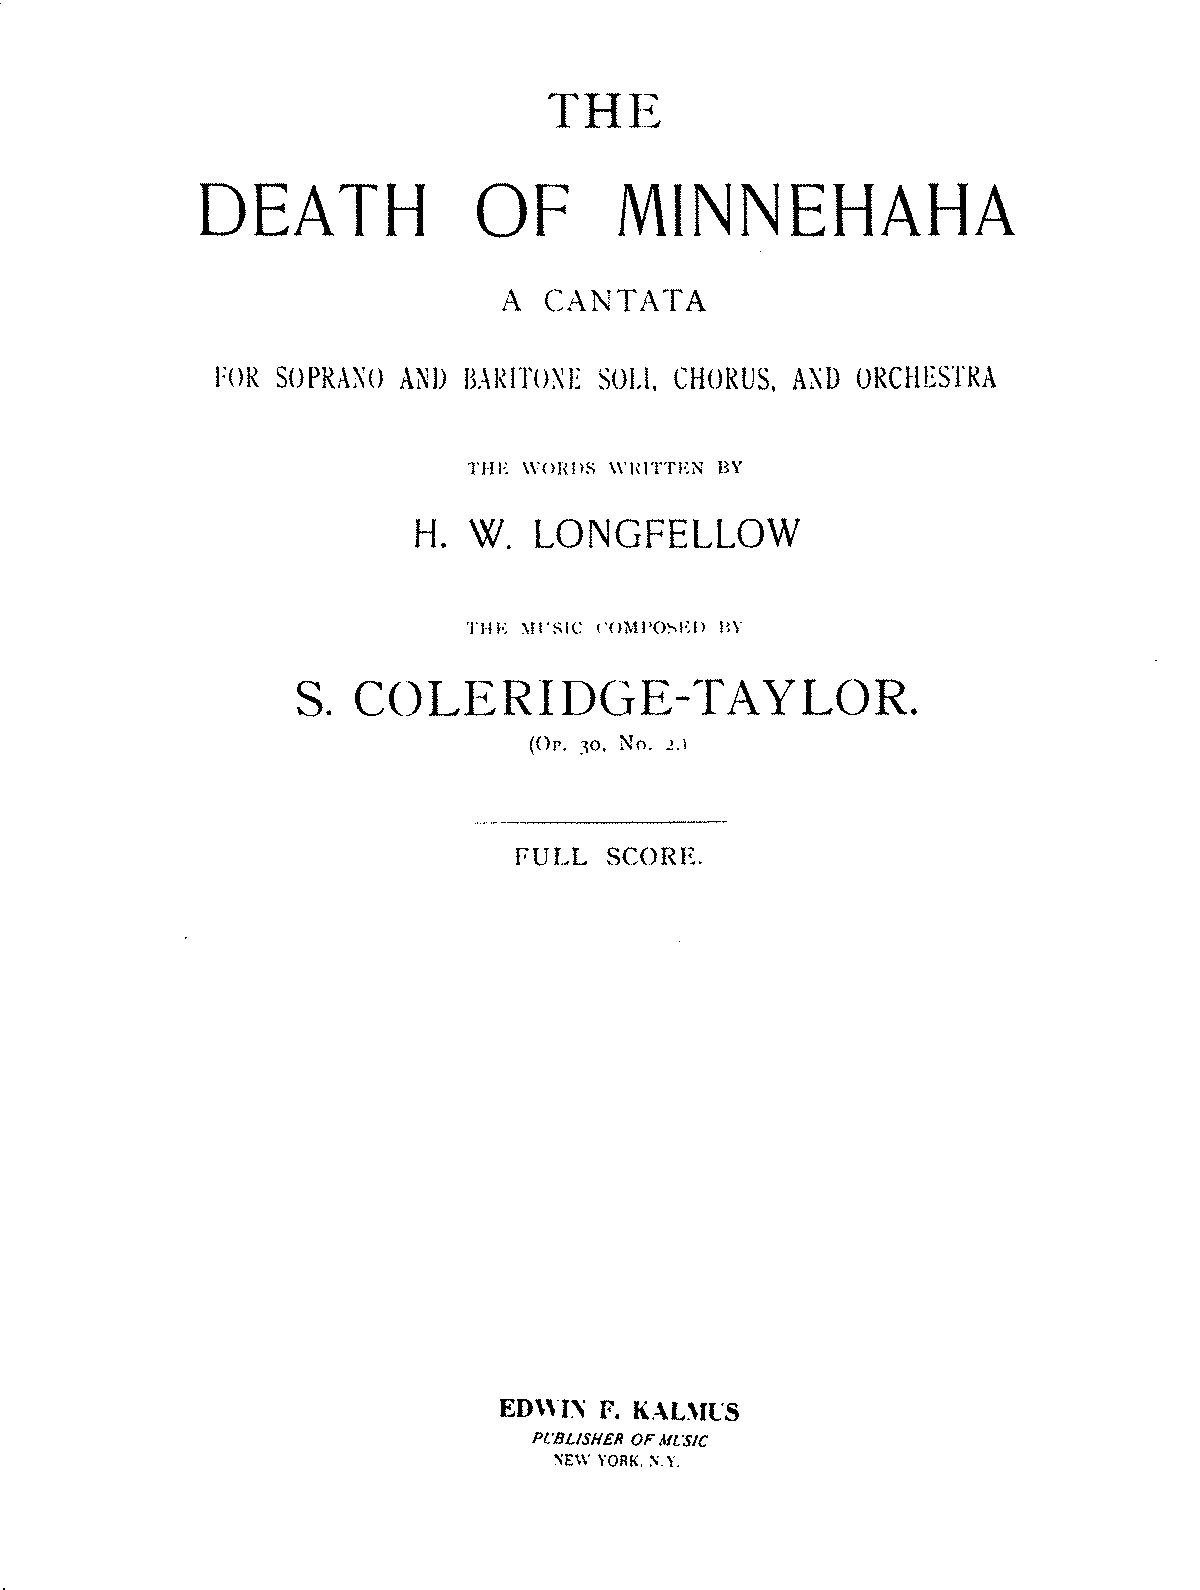 PMLP45230-The Death of Minnehaha for Soprano and Baritone Soli, Chorus, and Orchestra Op 30 No 2.pdf